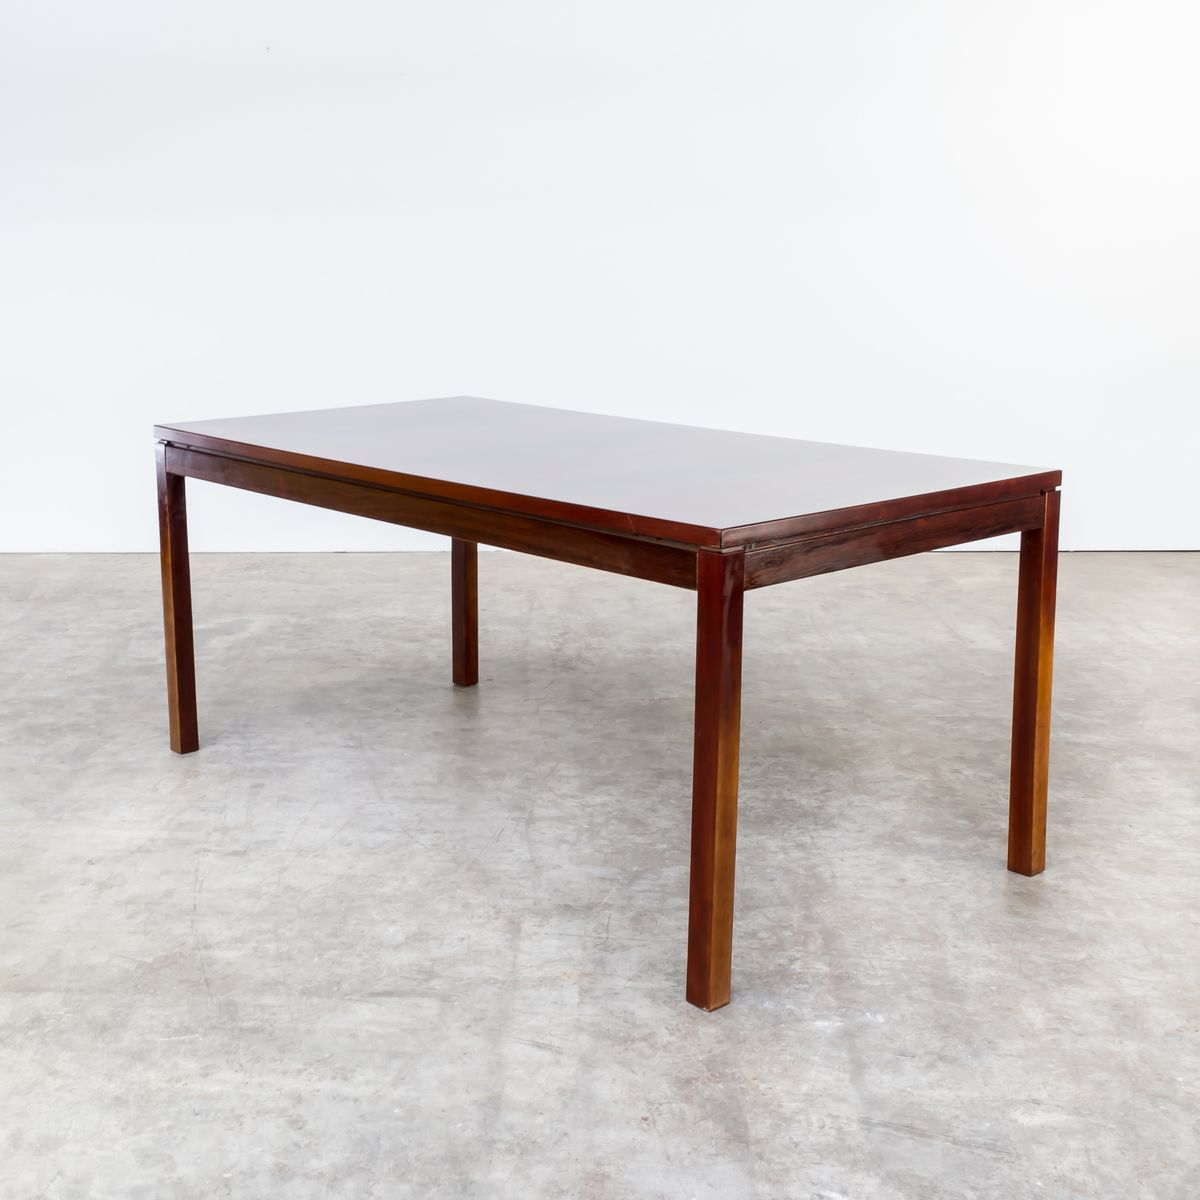 Extendable Rosewood Dining Table By Oswald Vermaercke For V Form, 1970s